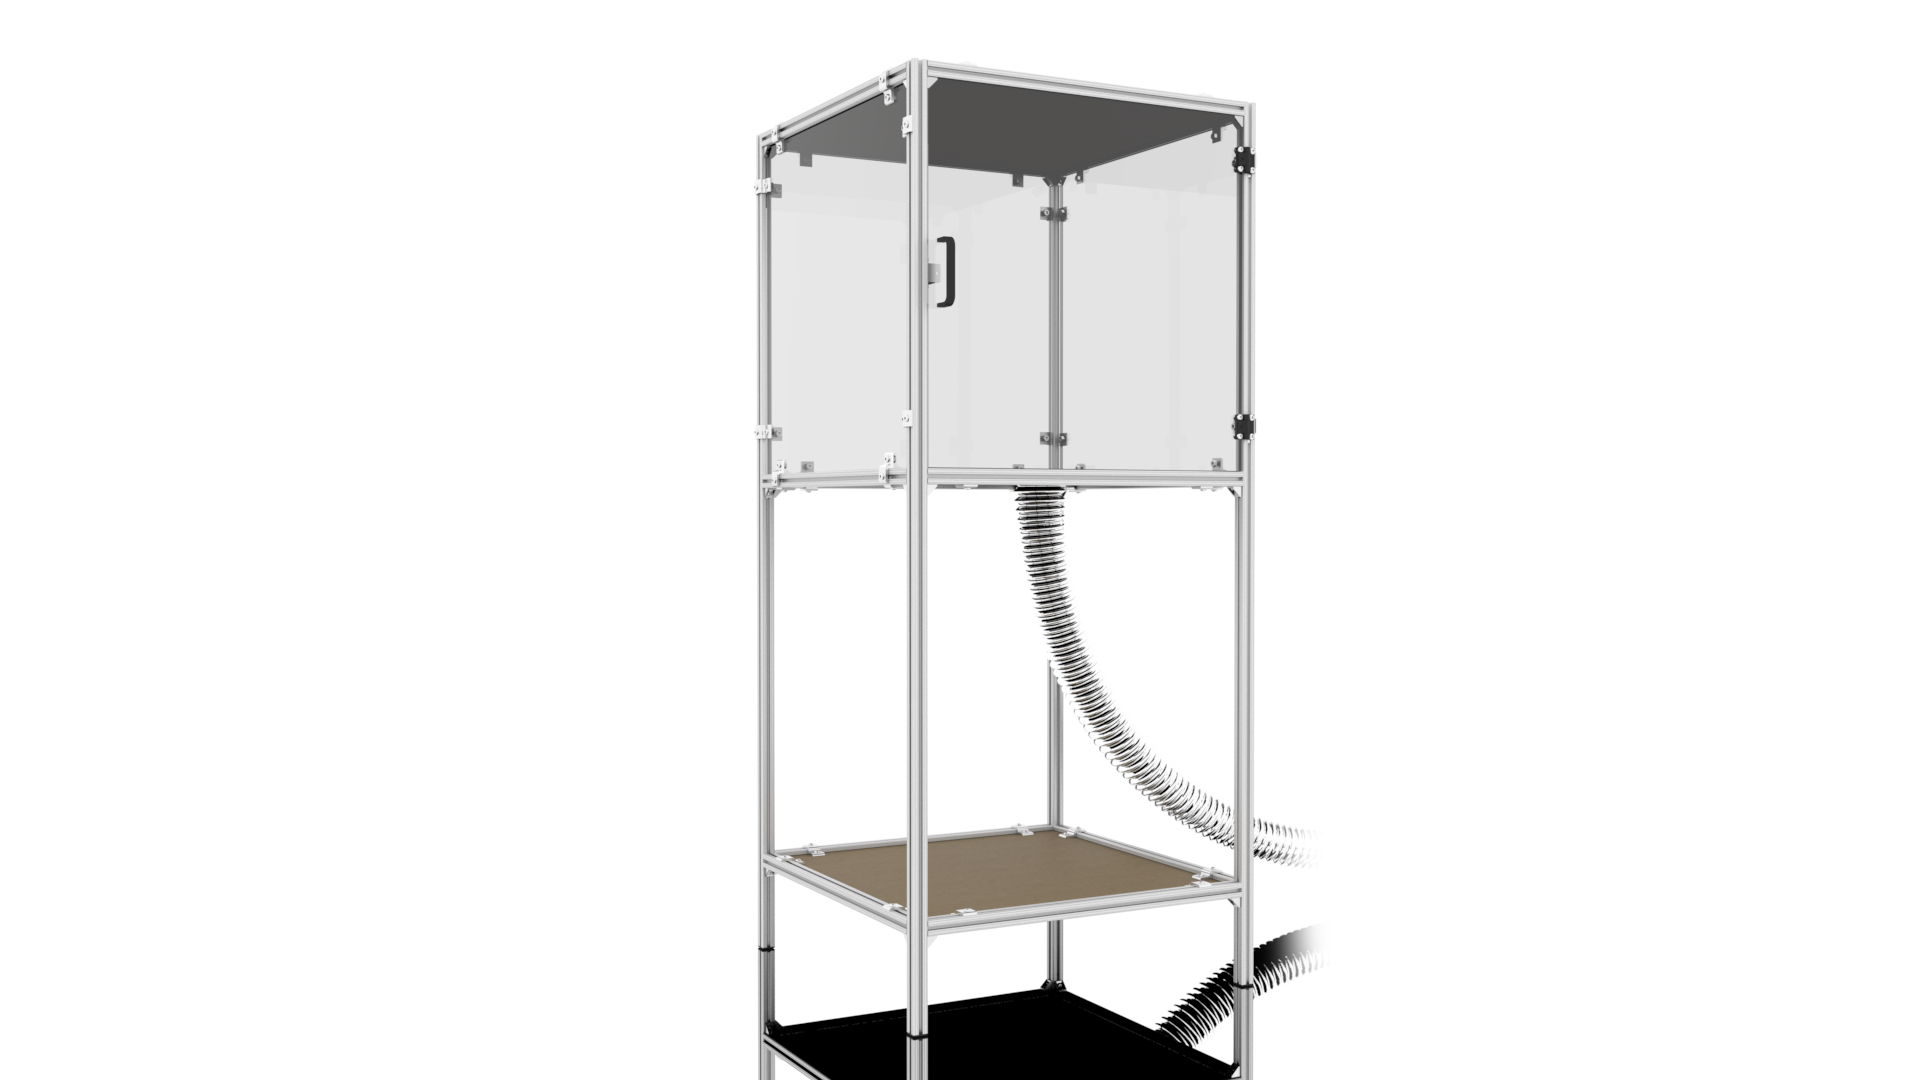 Fully-assembled printer enclosure with ventilation hose.